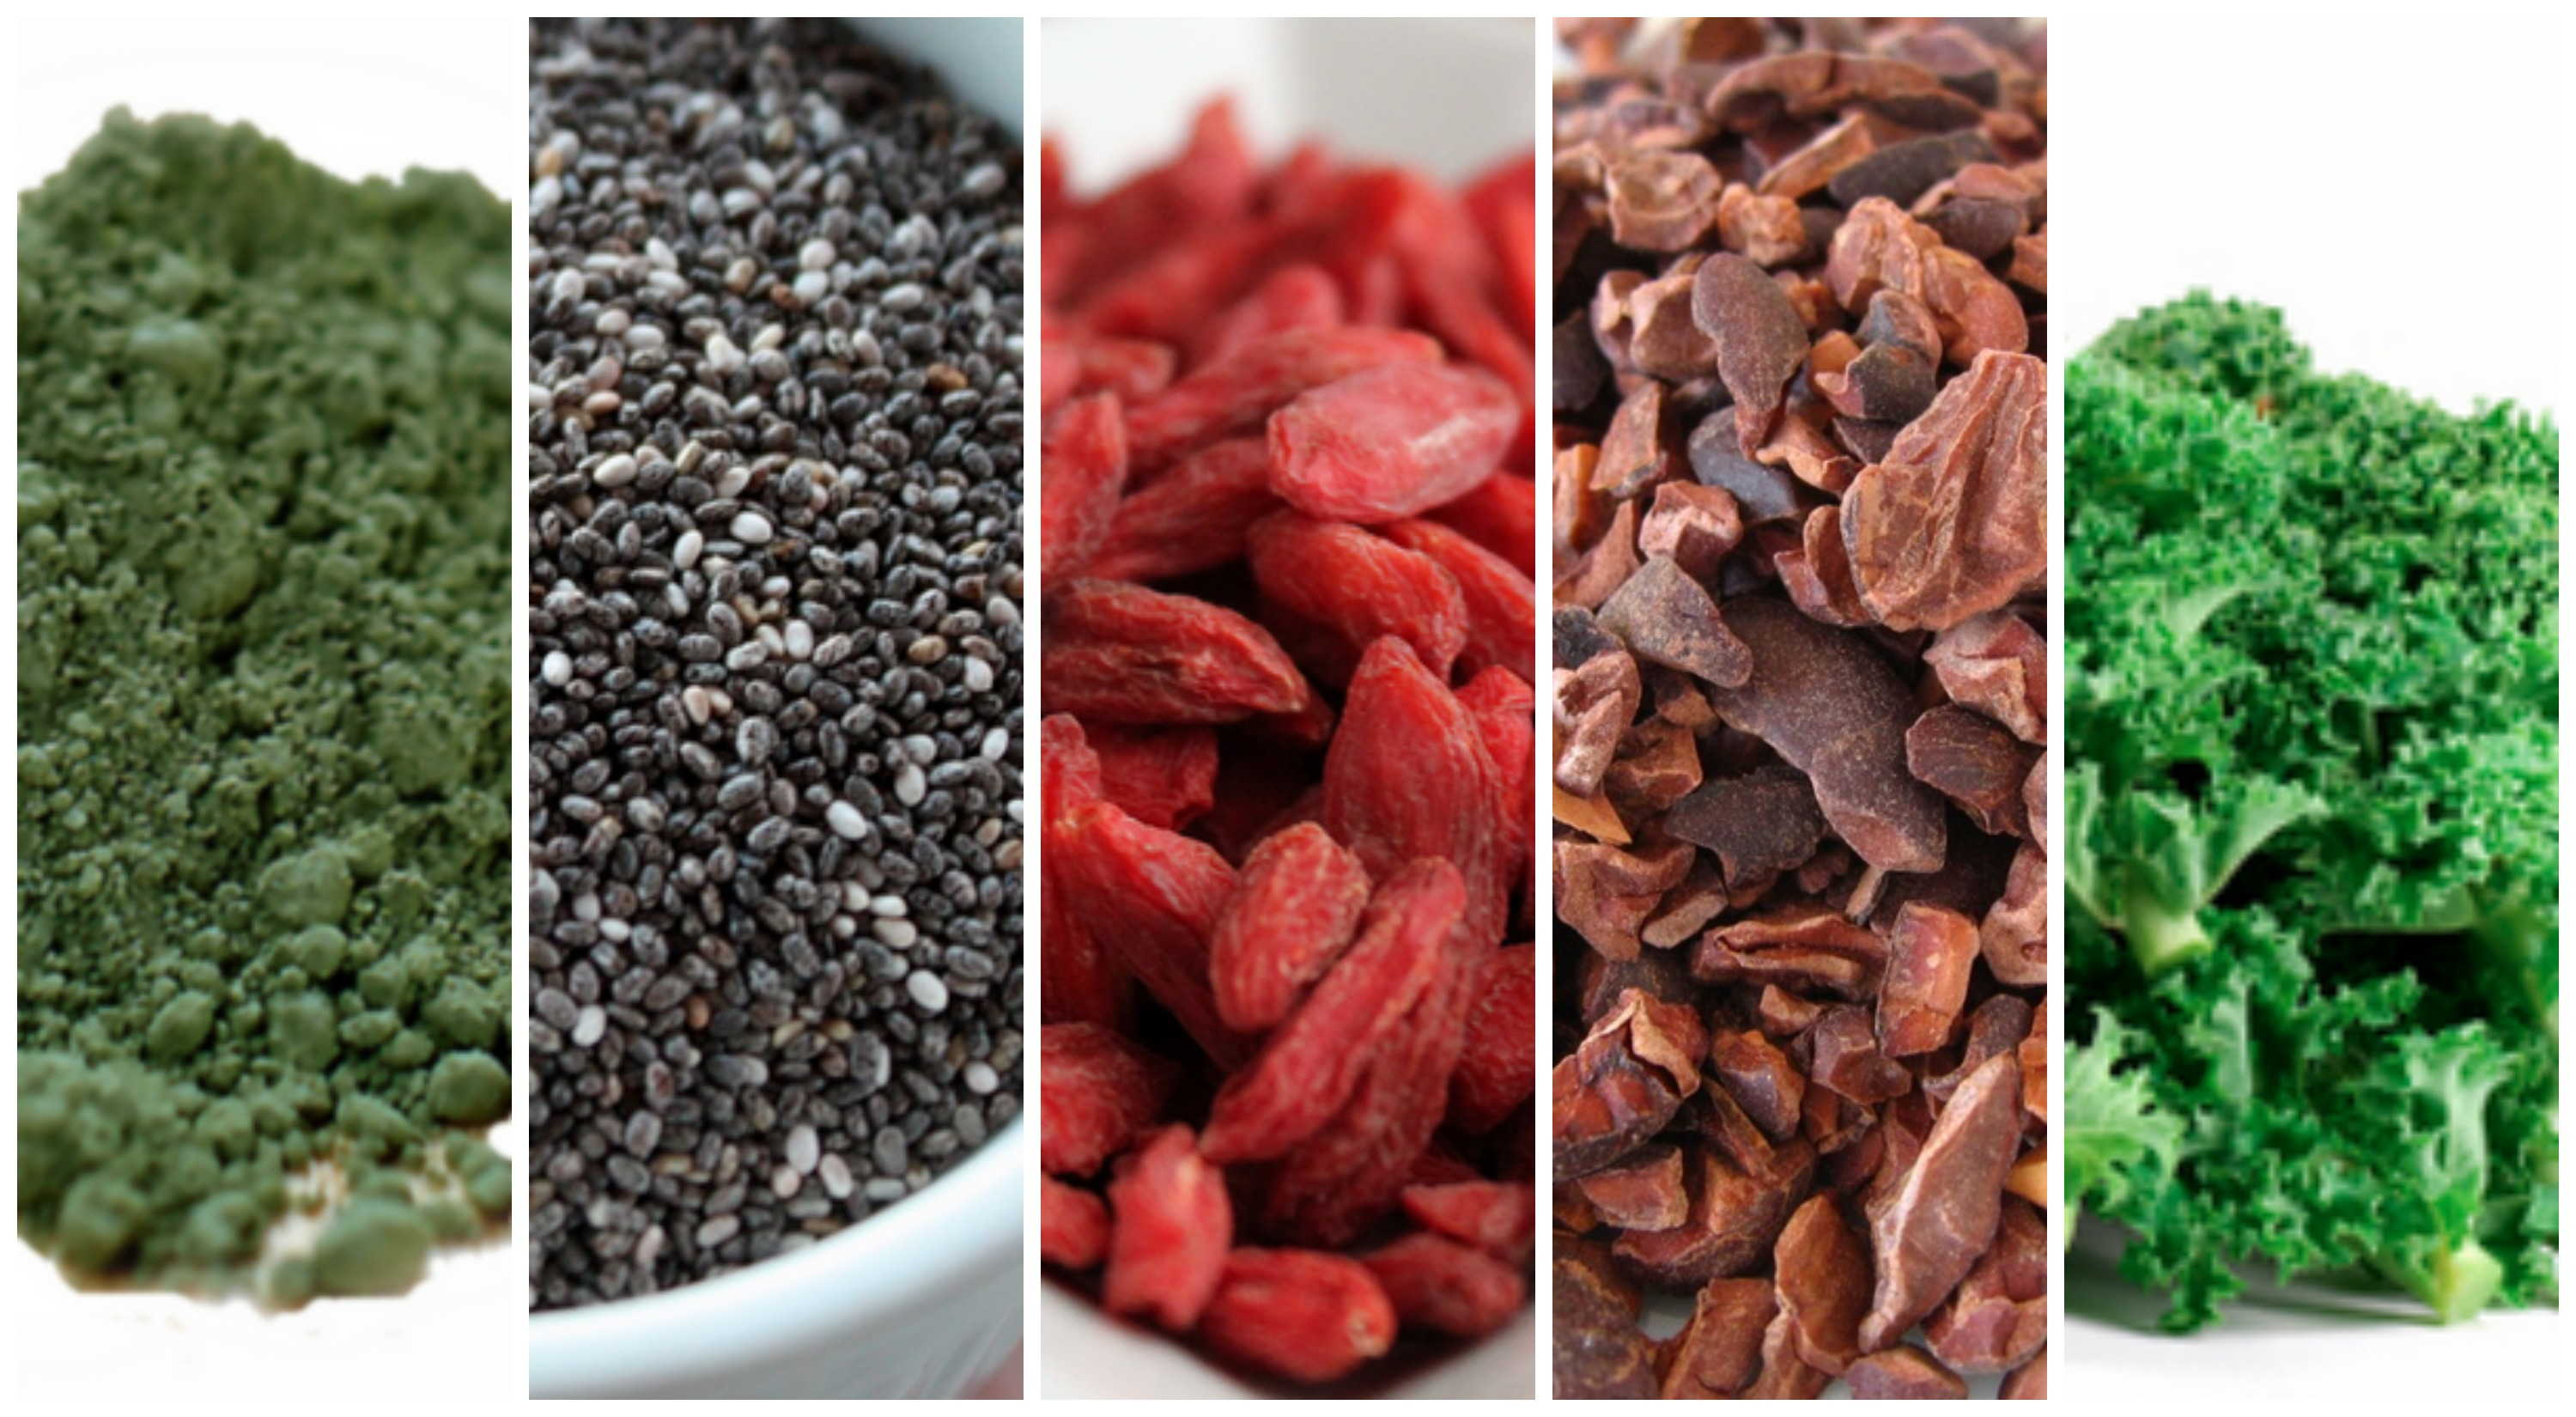 SUPERFOODS: WHAT MAKES THEM SO SUPER?